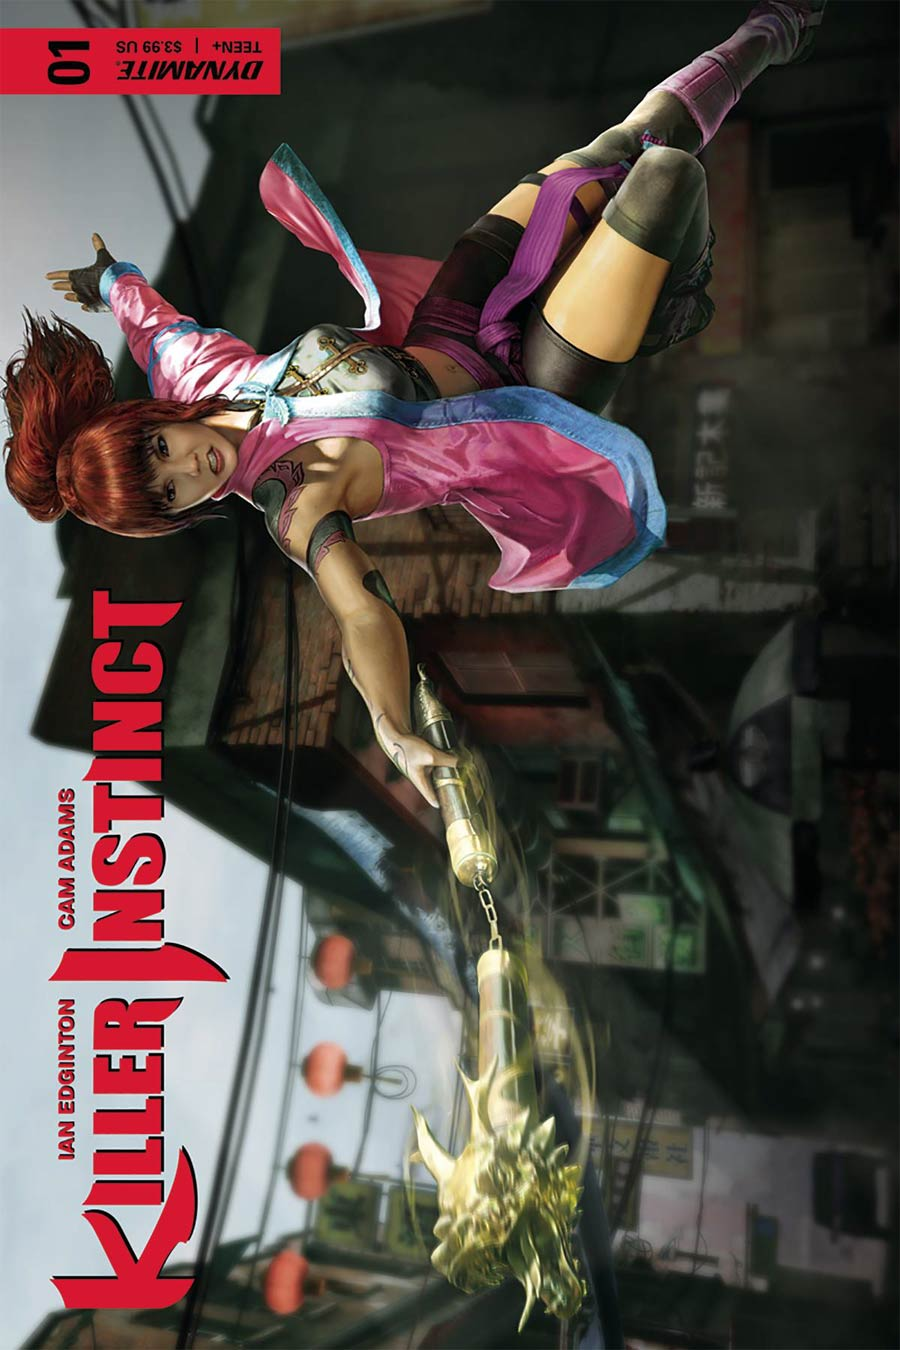 Killer Instinct Vol 2 #1 Cover D Variant Game Play Cover